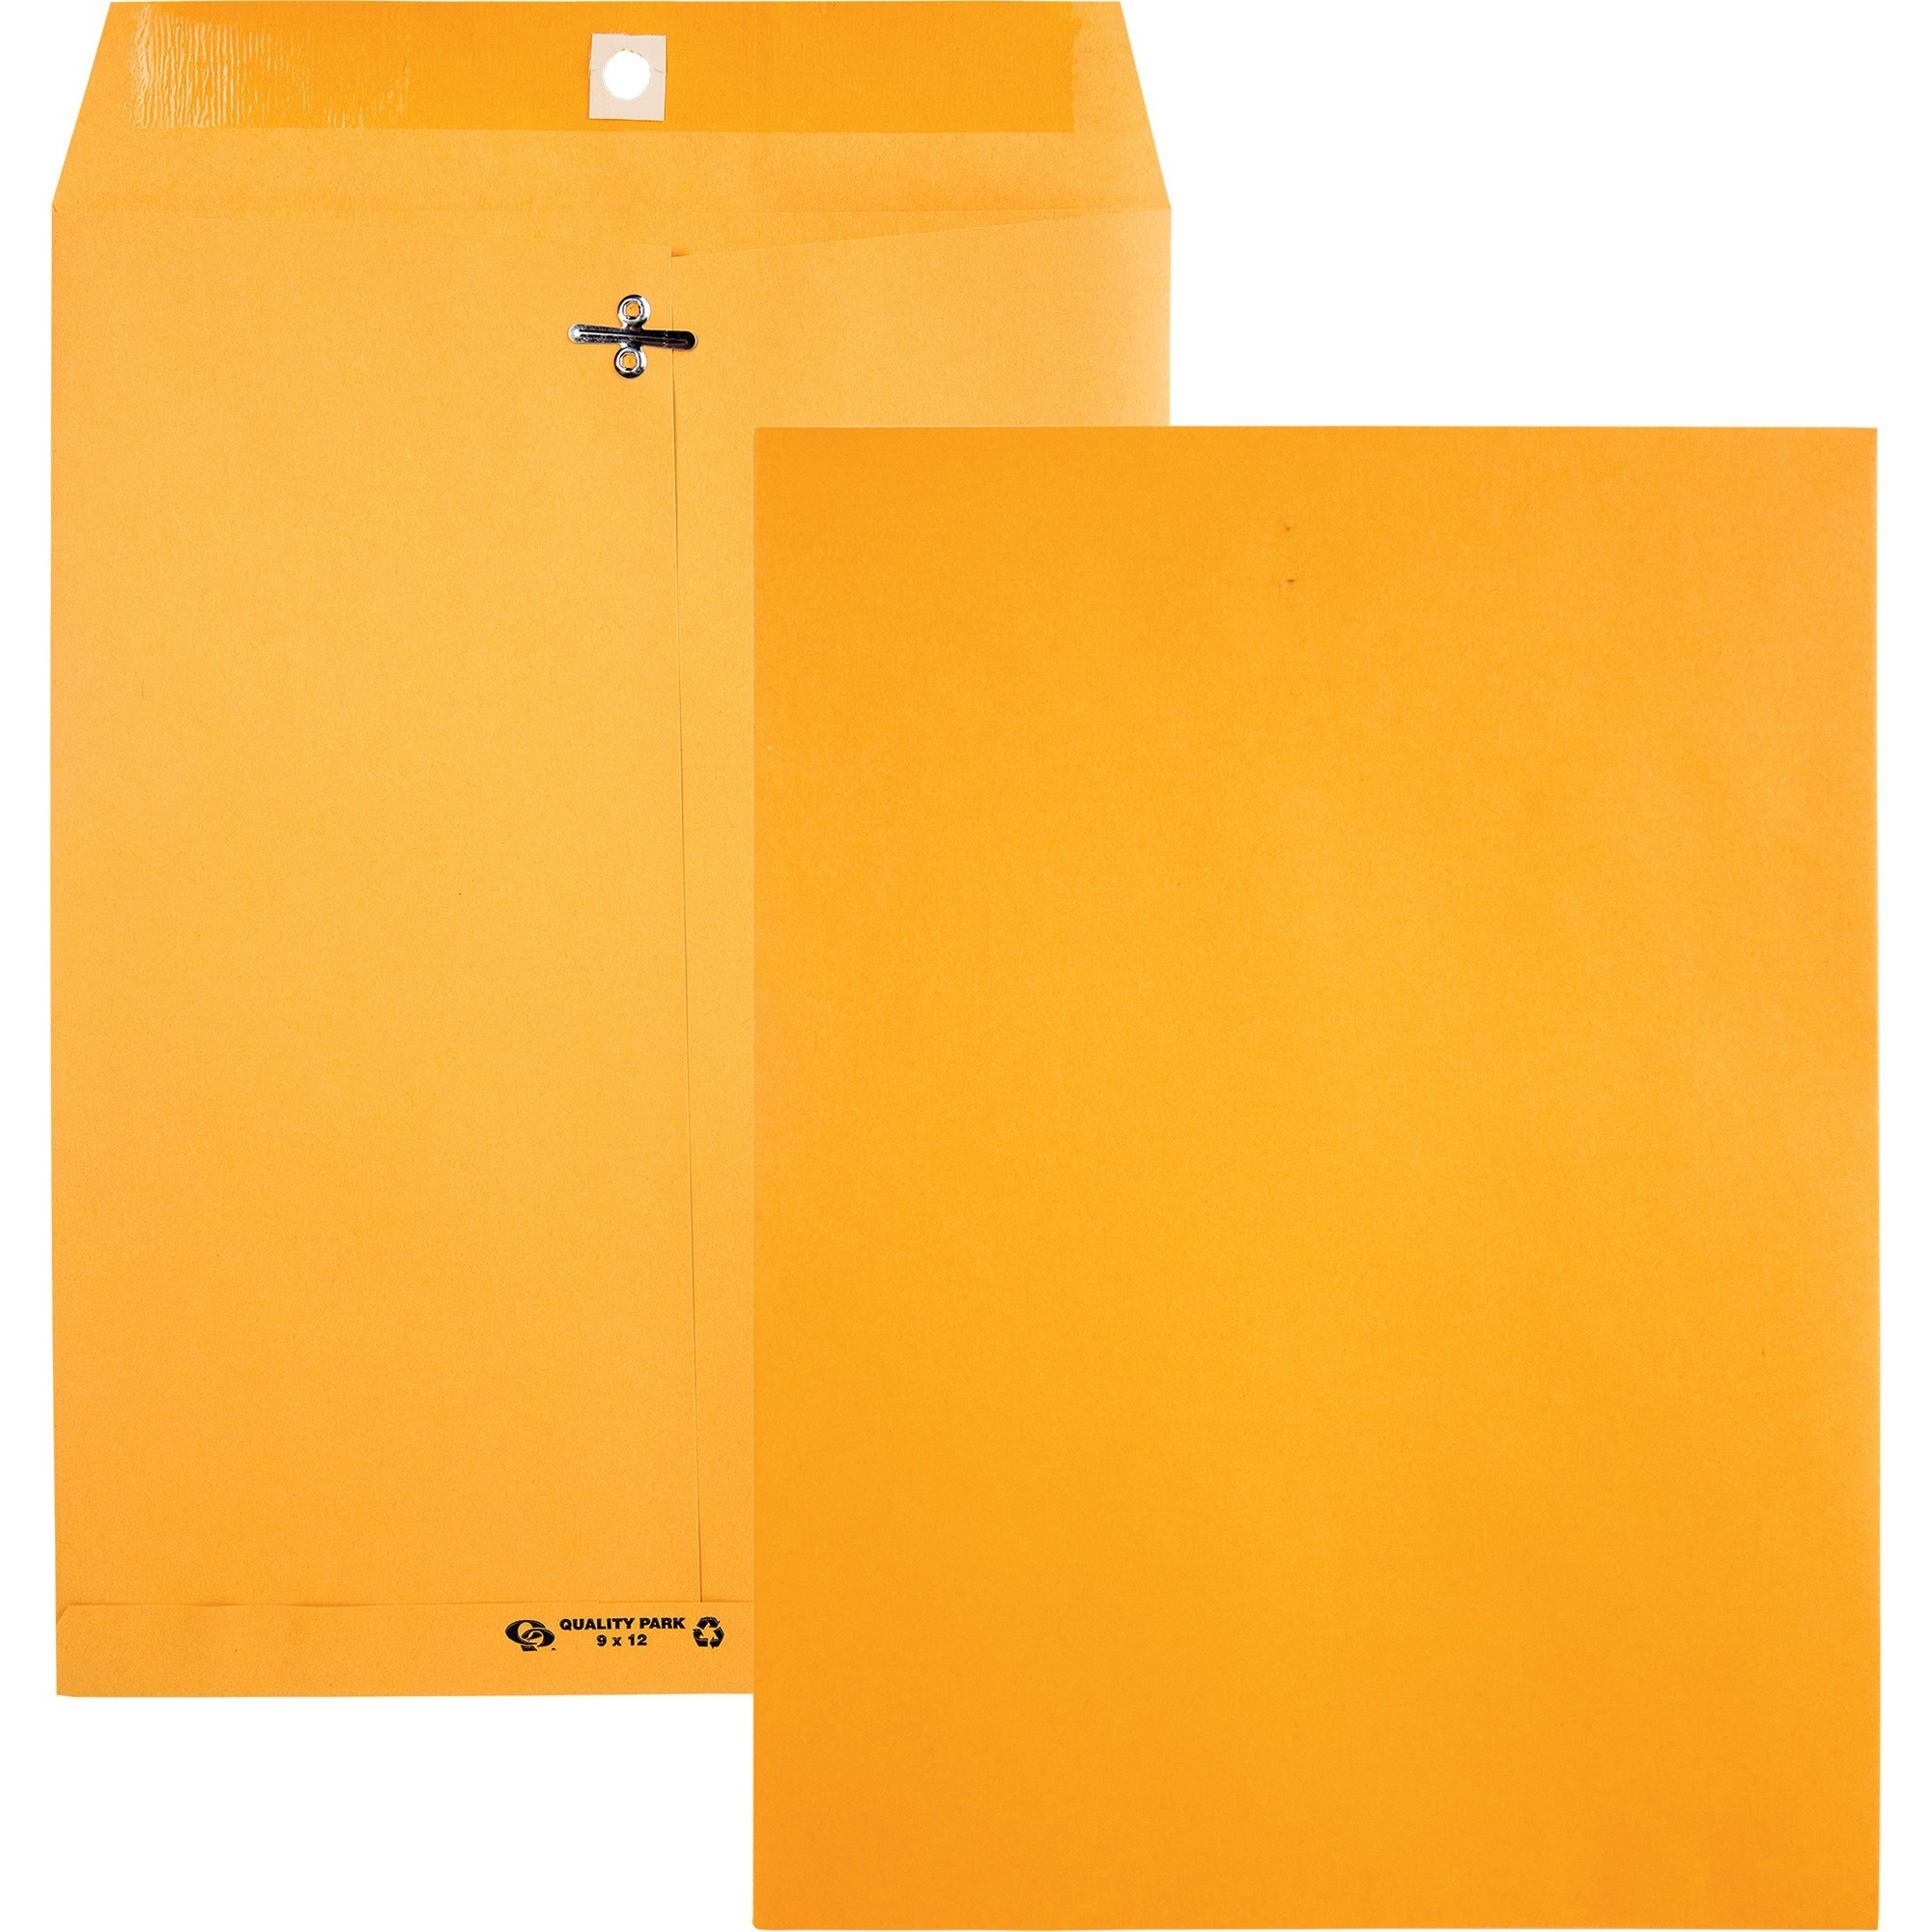 Clasp Envelope, Recycled, 9 x 12, 28lb, Light Brown, 100/Box